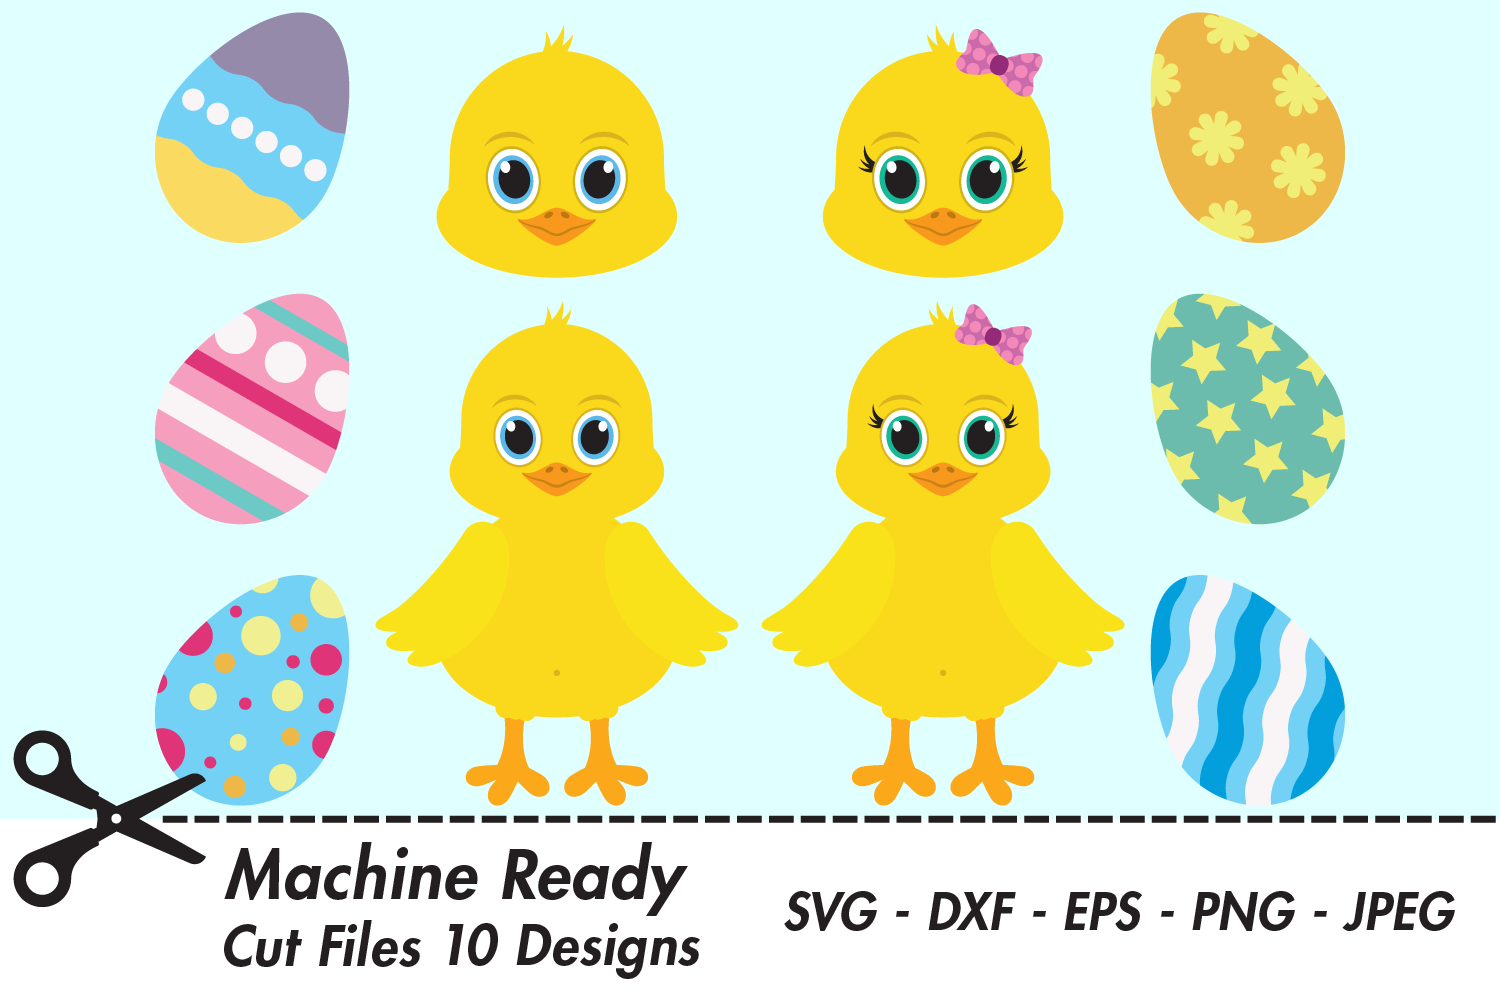 Download Free Zh Rde2qe6rcm for Cricut Explore, Silhouette and other cutting machines.